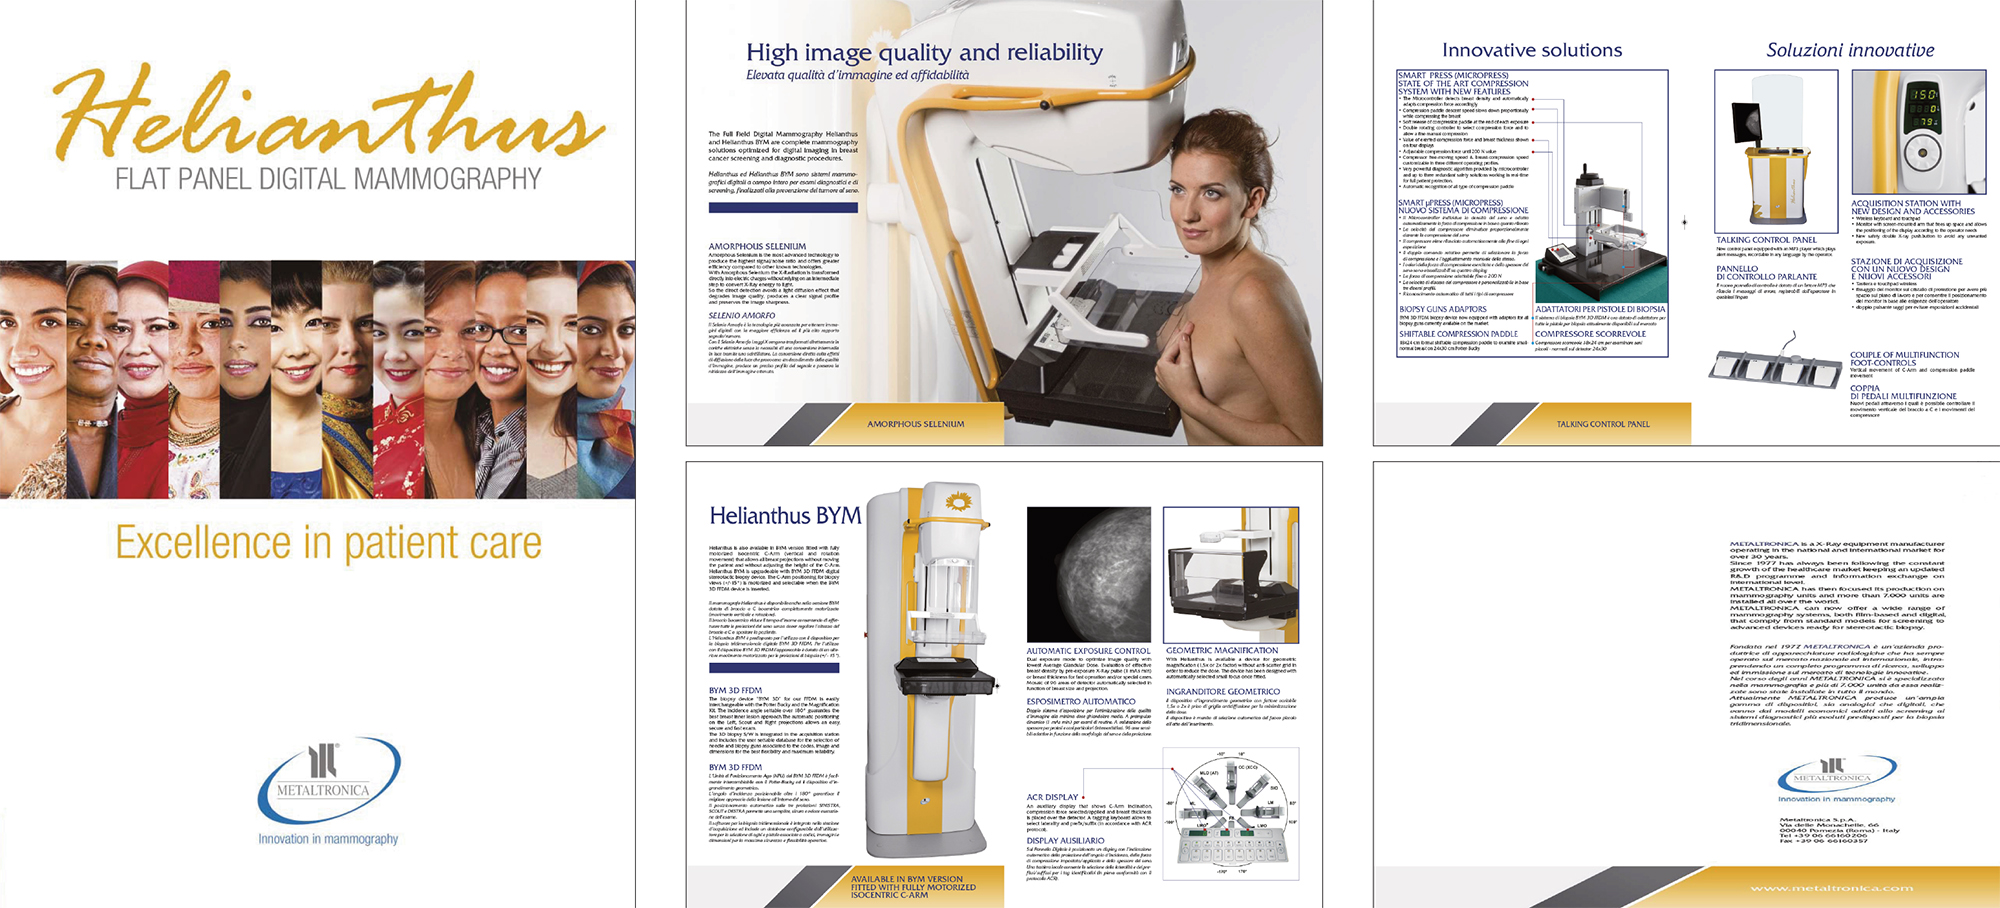 Metaltronica, mammografia, pomezia, latina, innovation in mammography, flat panel digital mammograph